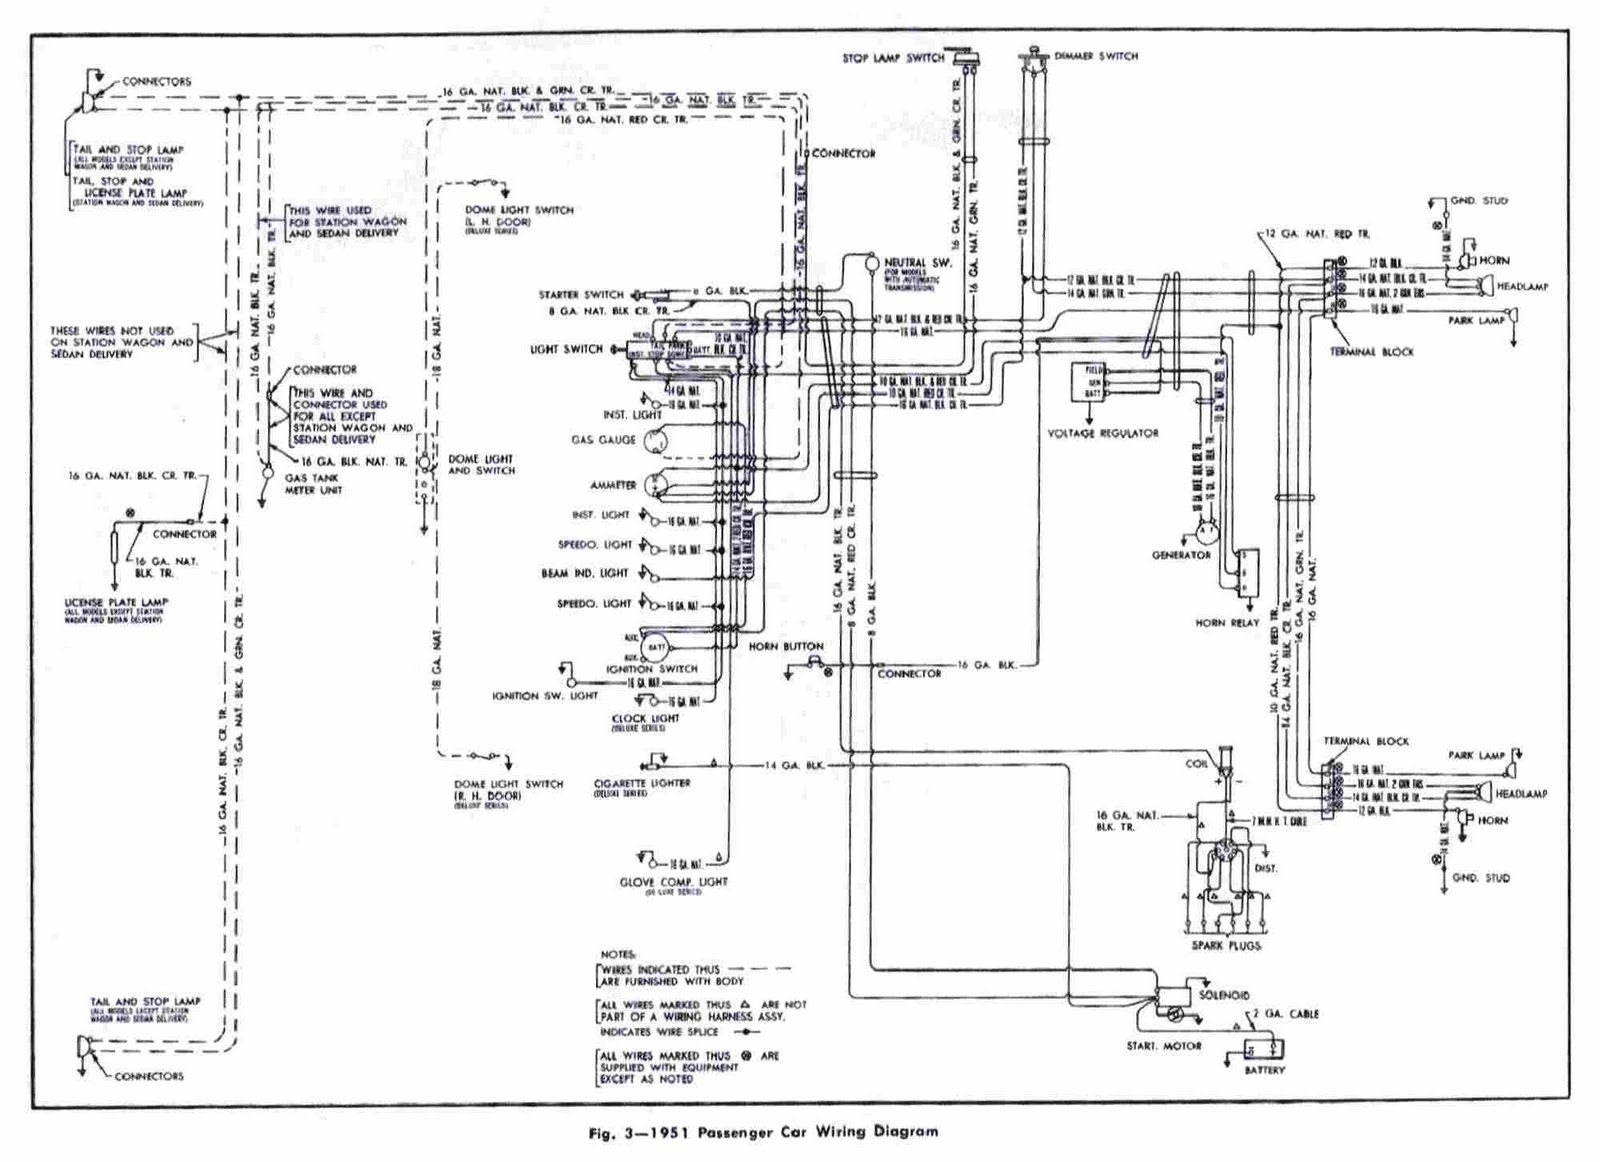 Chevrolet Passenger Car Wiring Diagram